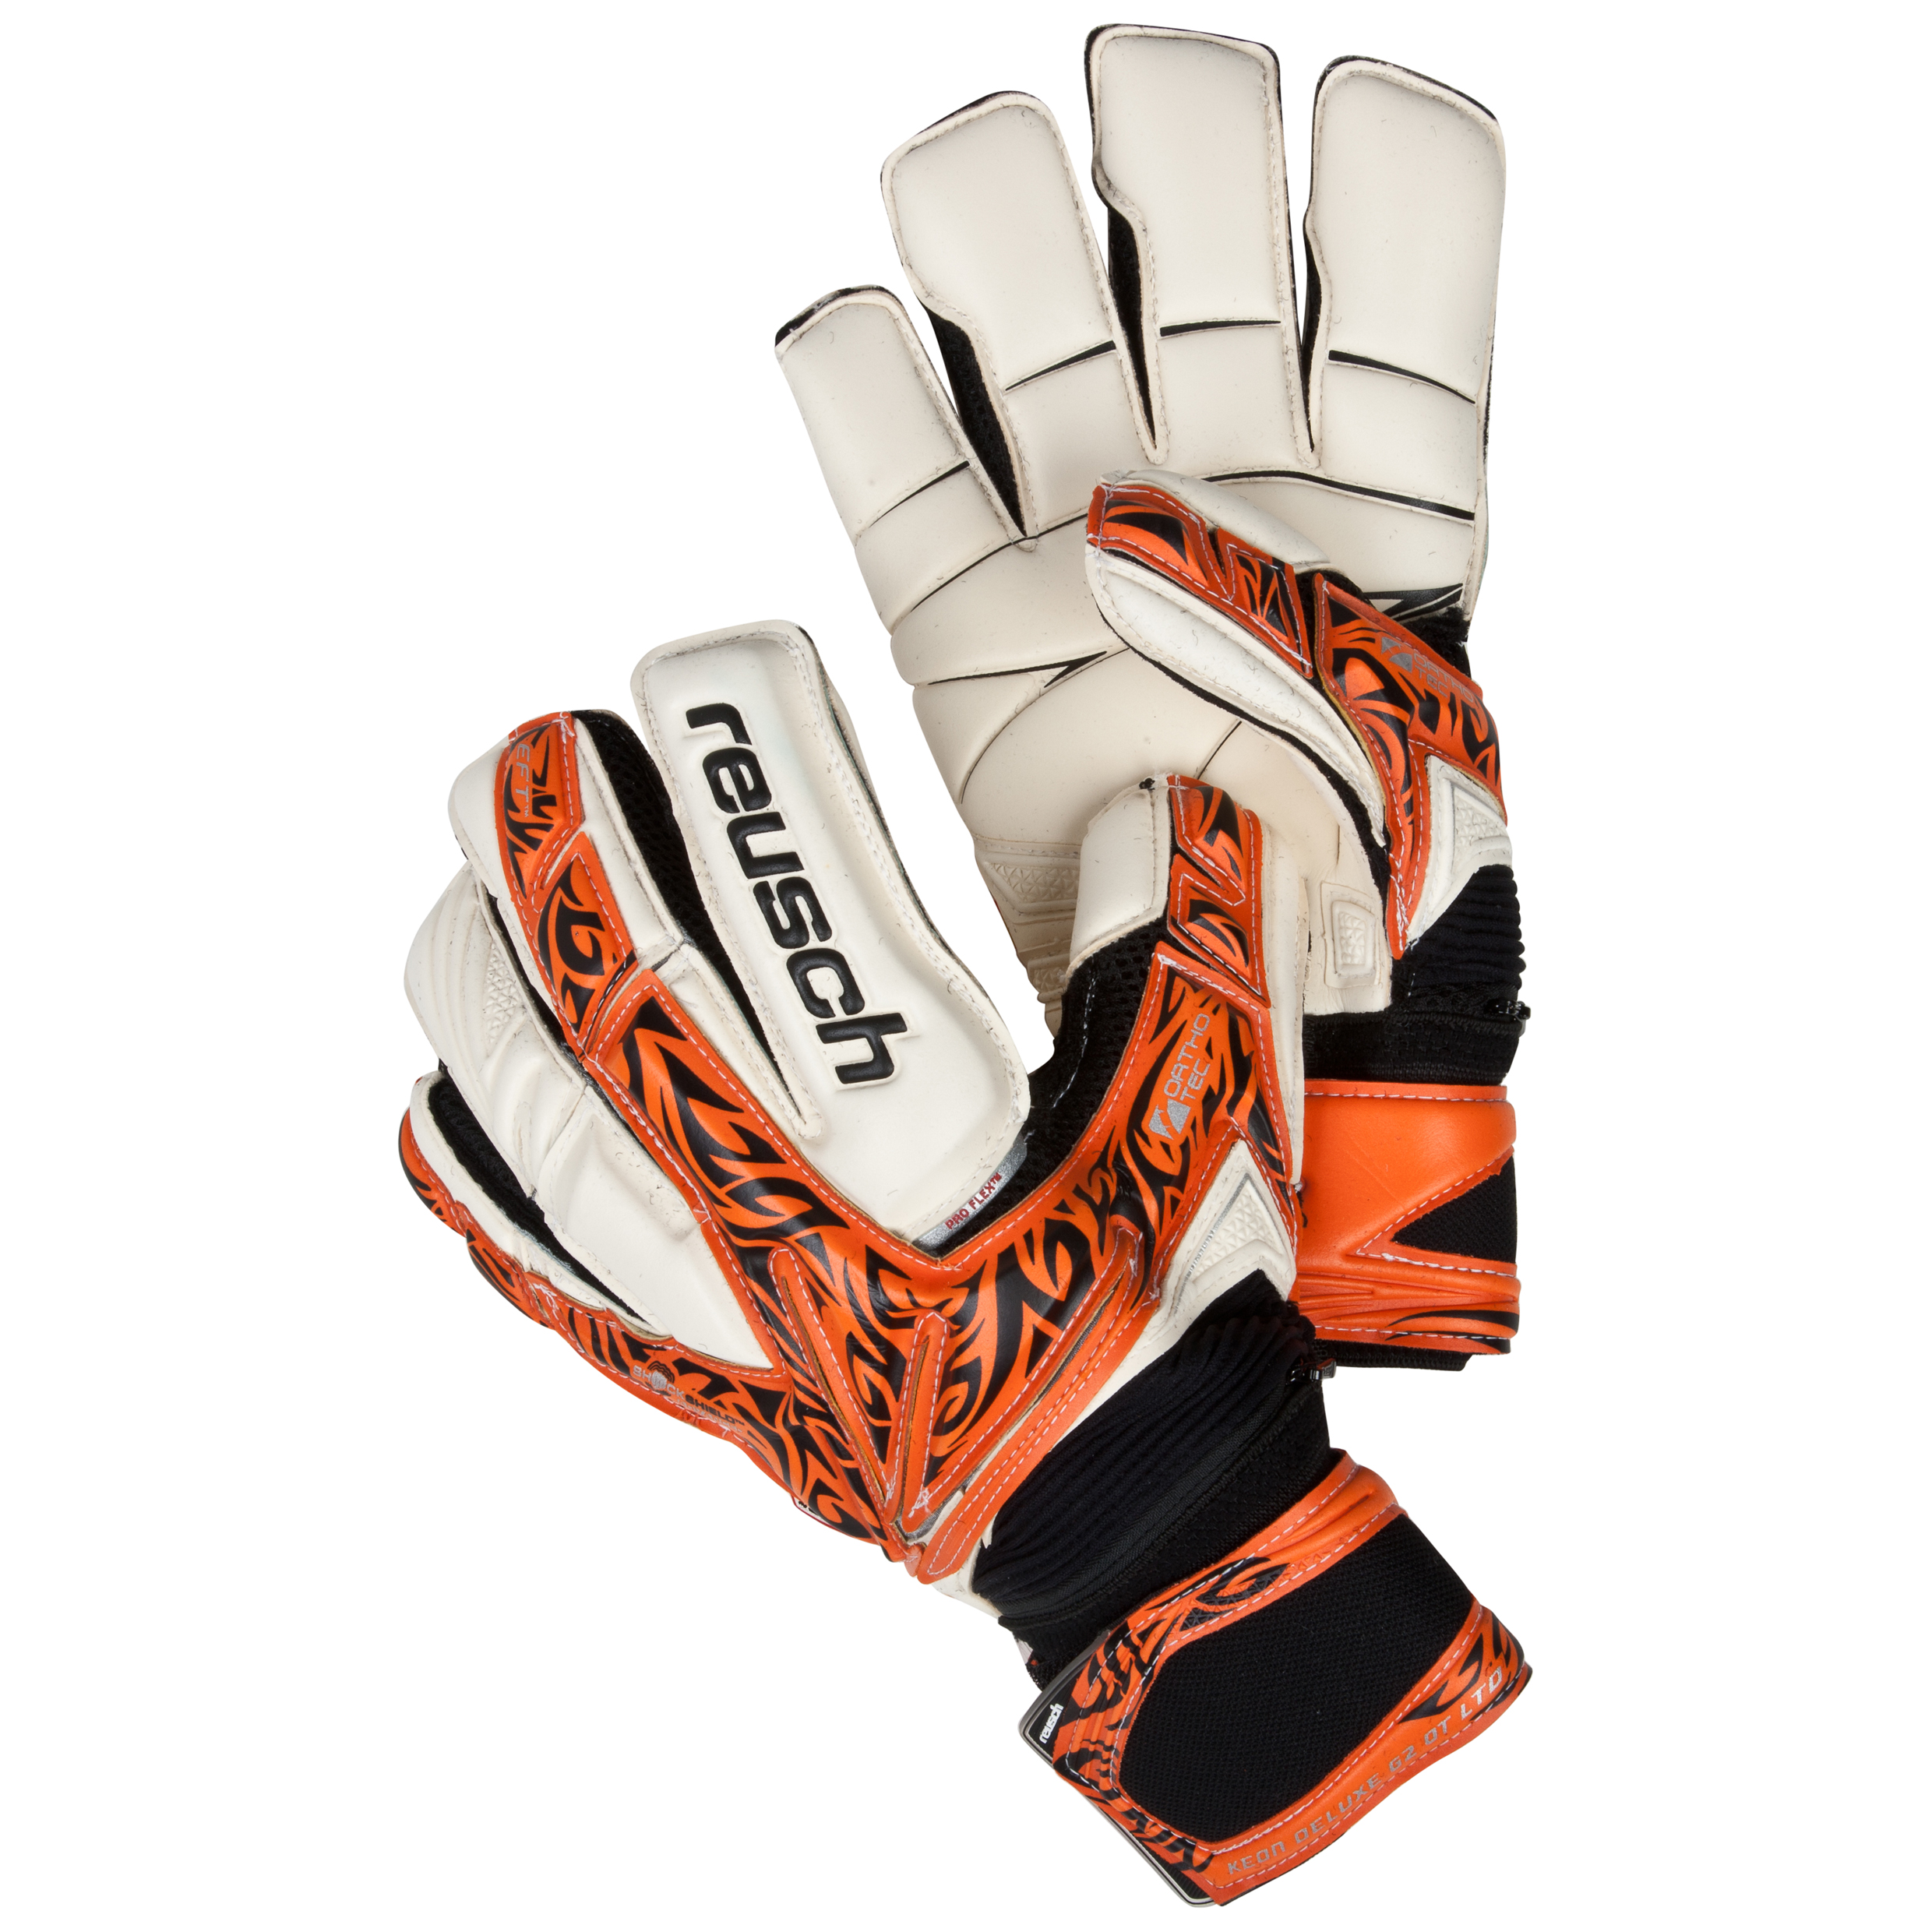 Reusch Keon Deluxe G2 Ortho-Tec LTD - Goalkeeper Gloves